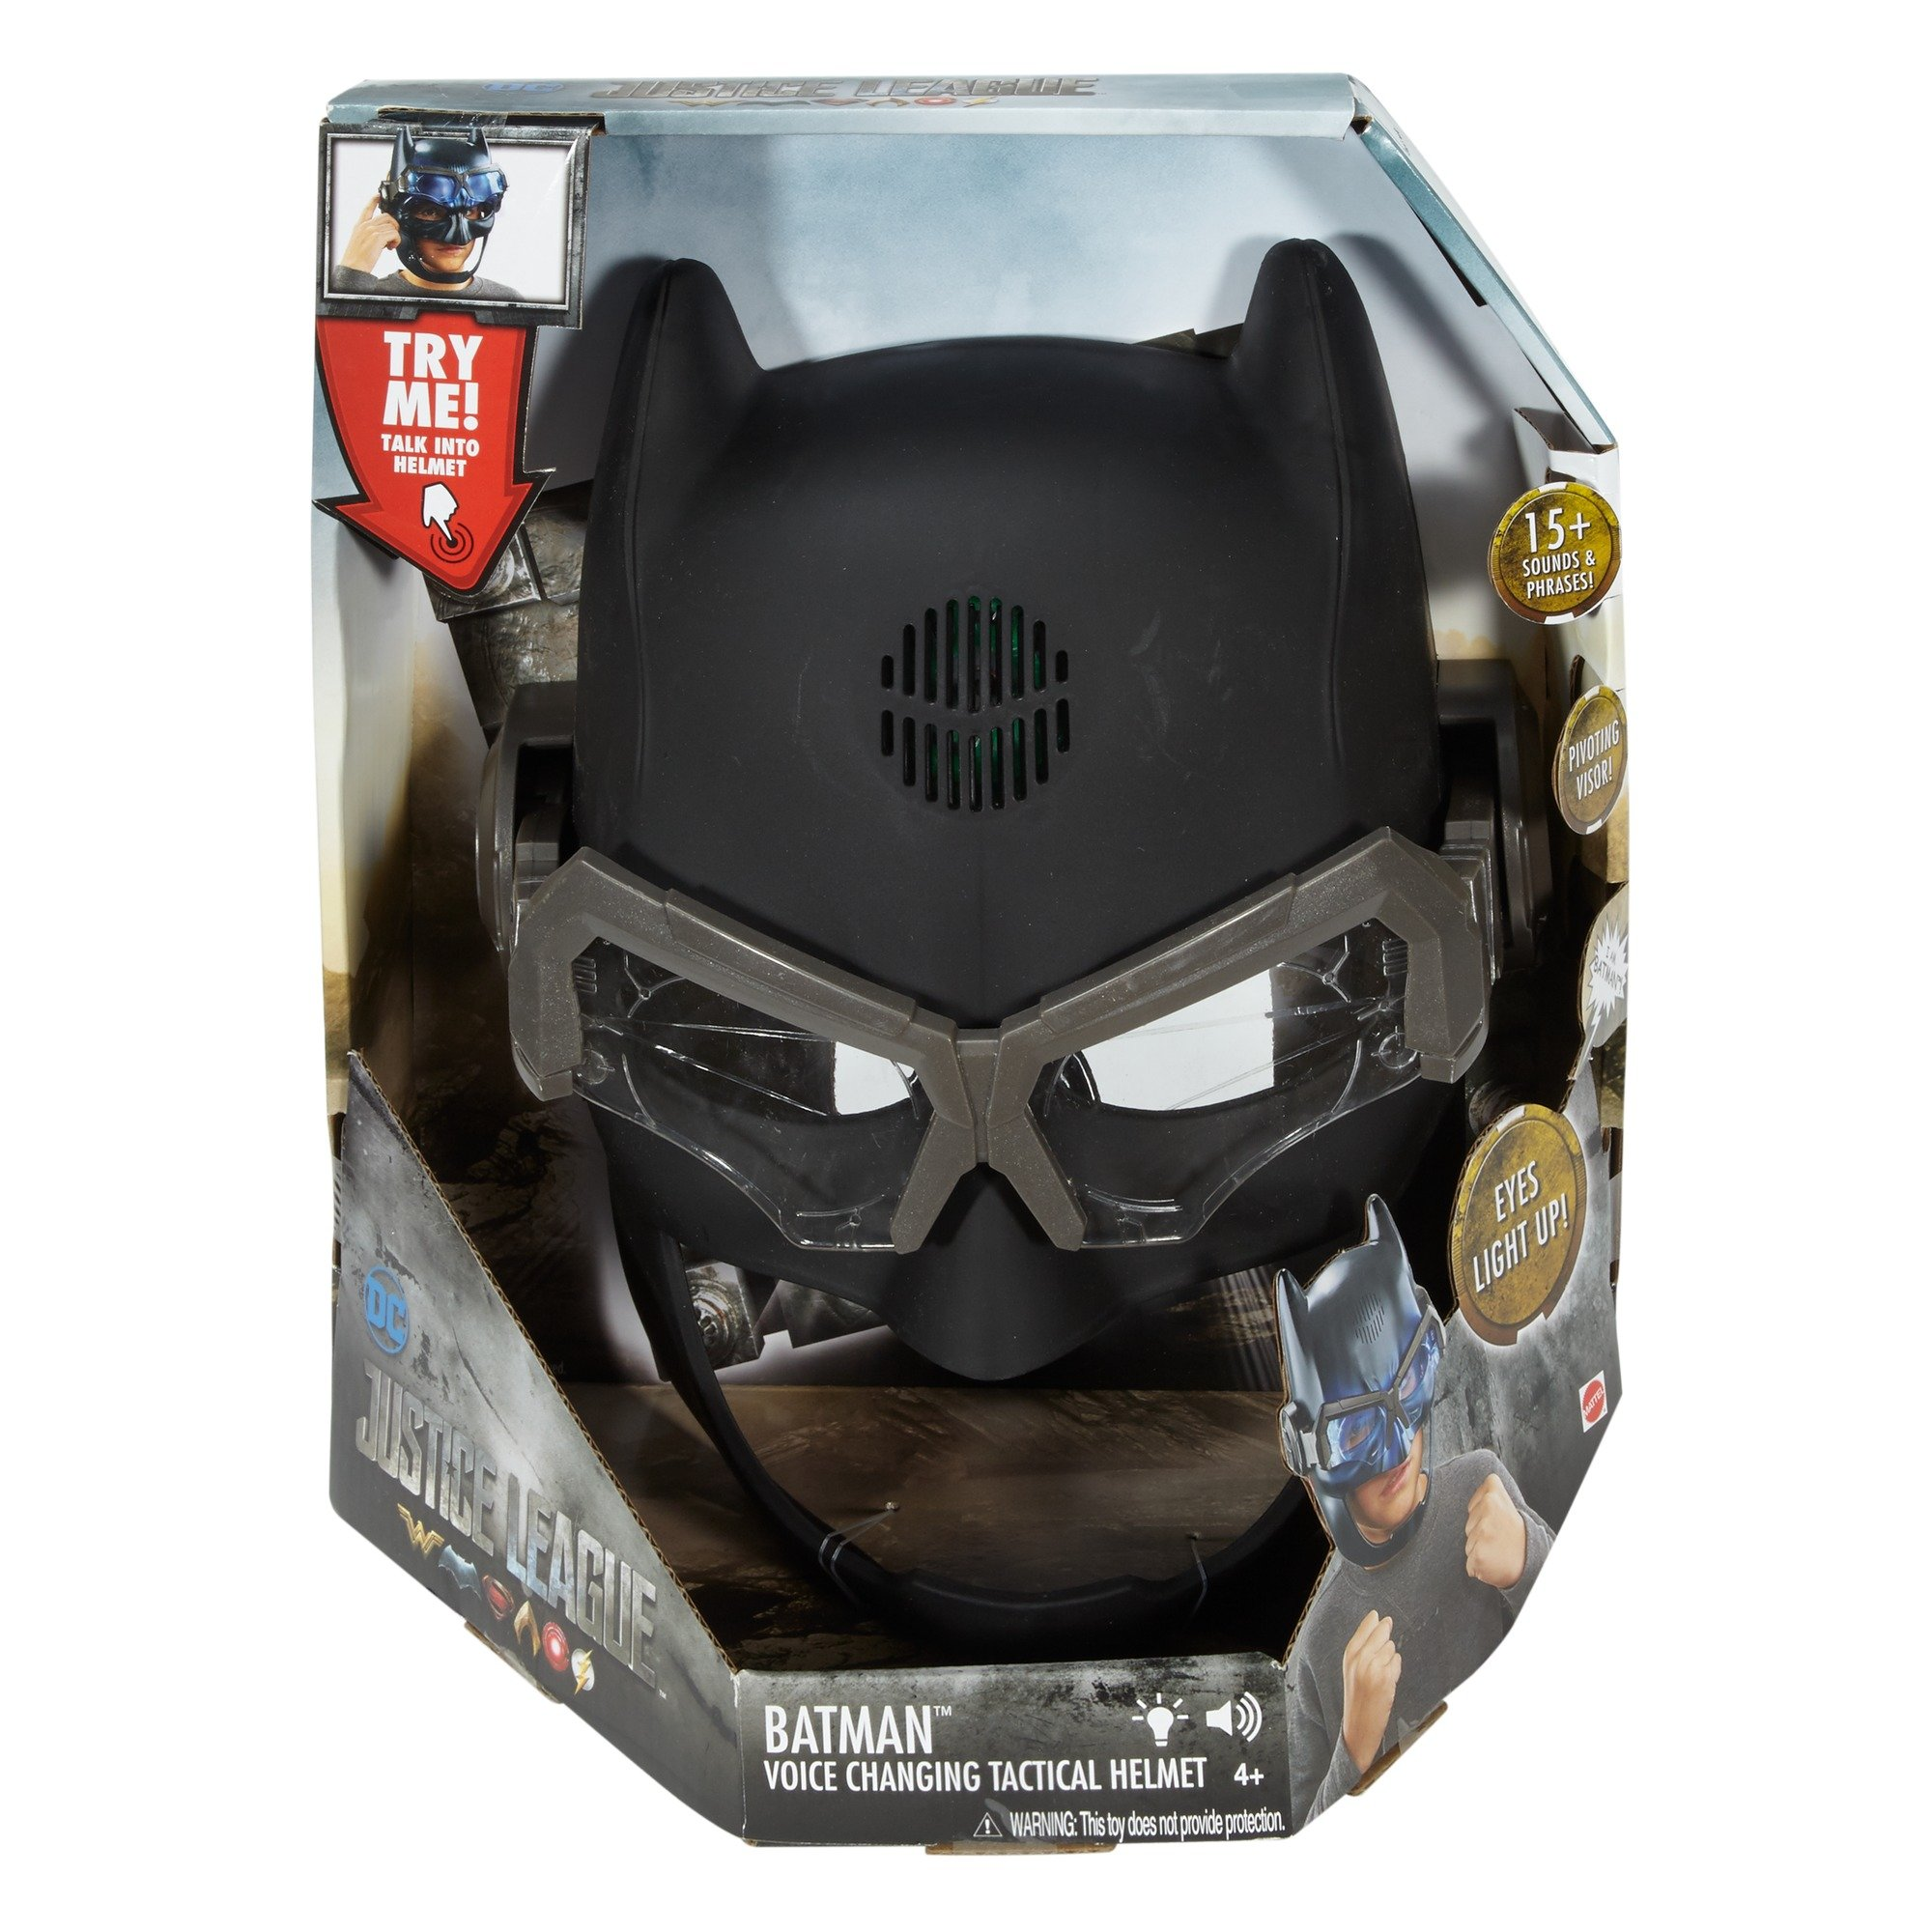 DC Justice League Batman Voice Changing Tactical Helmet